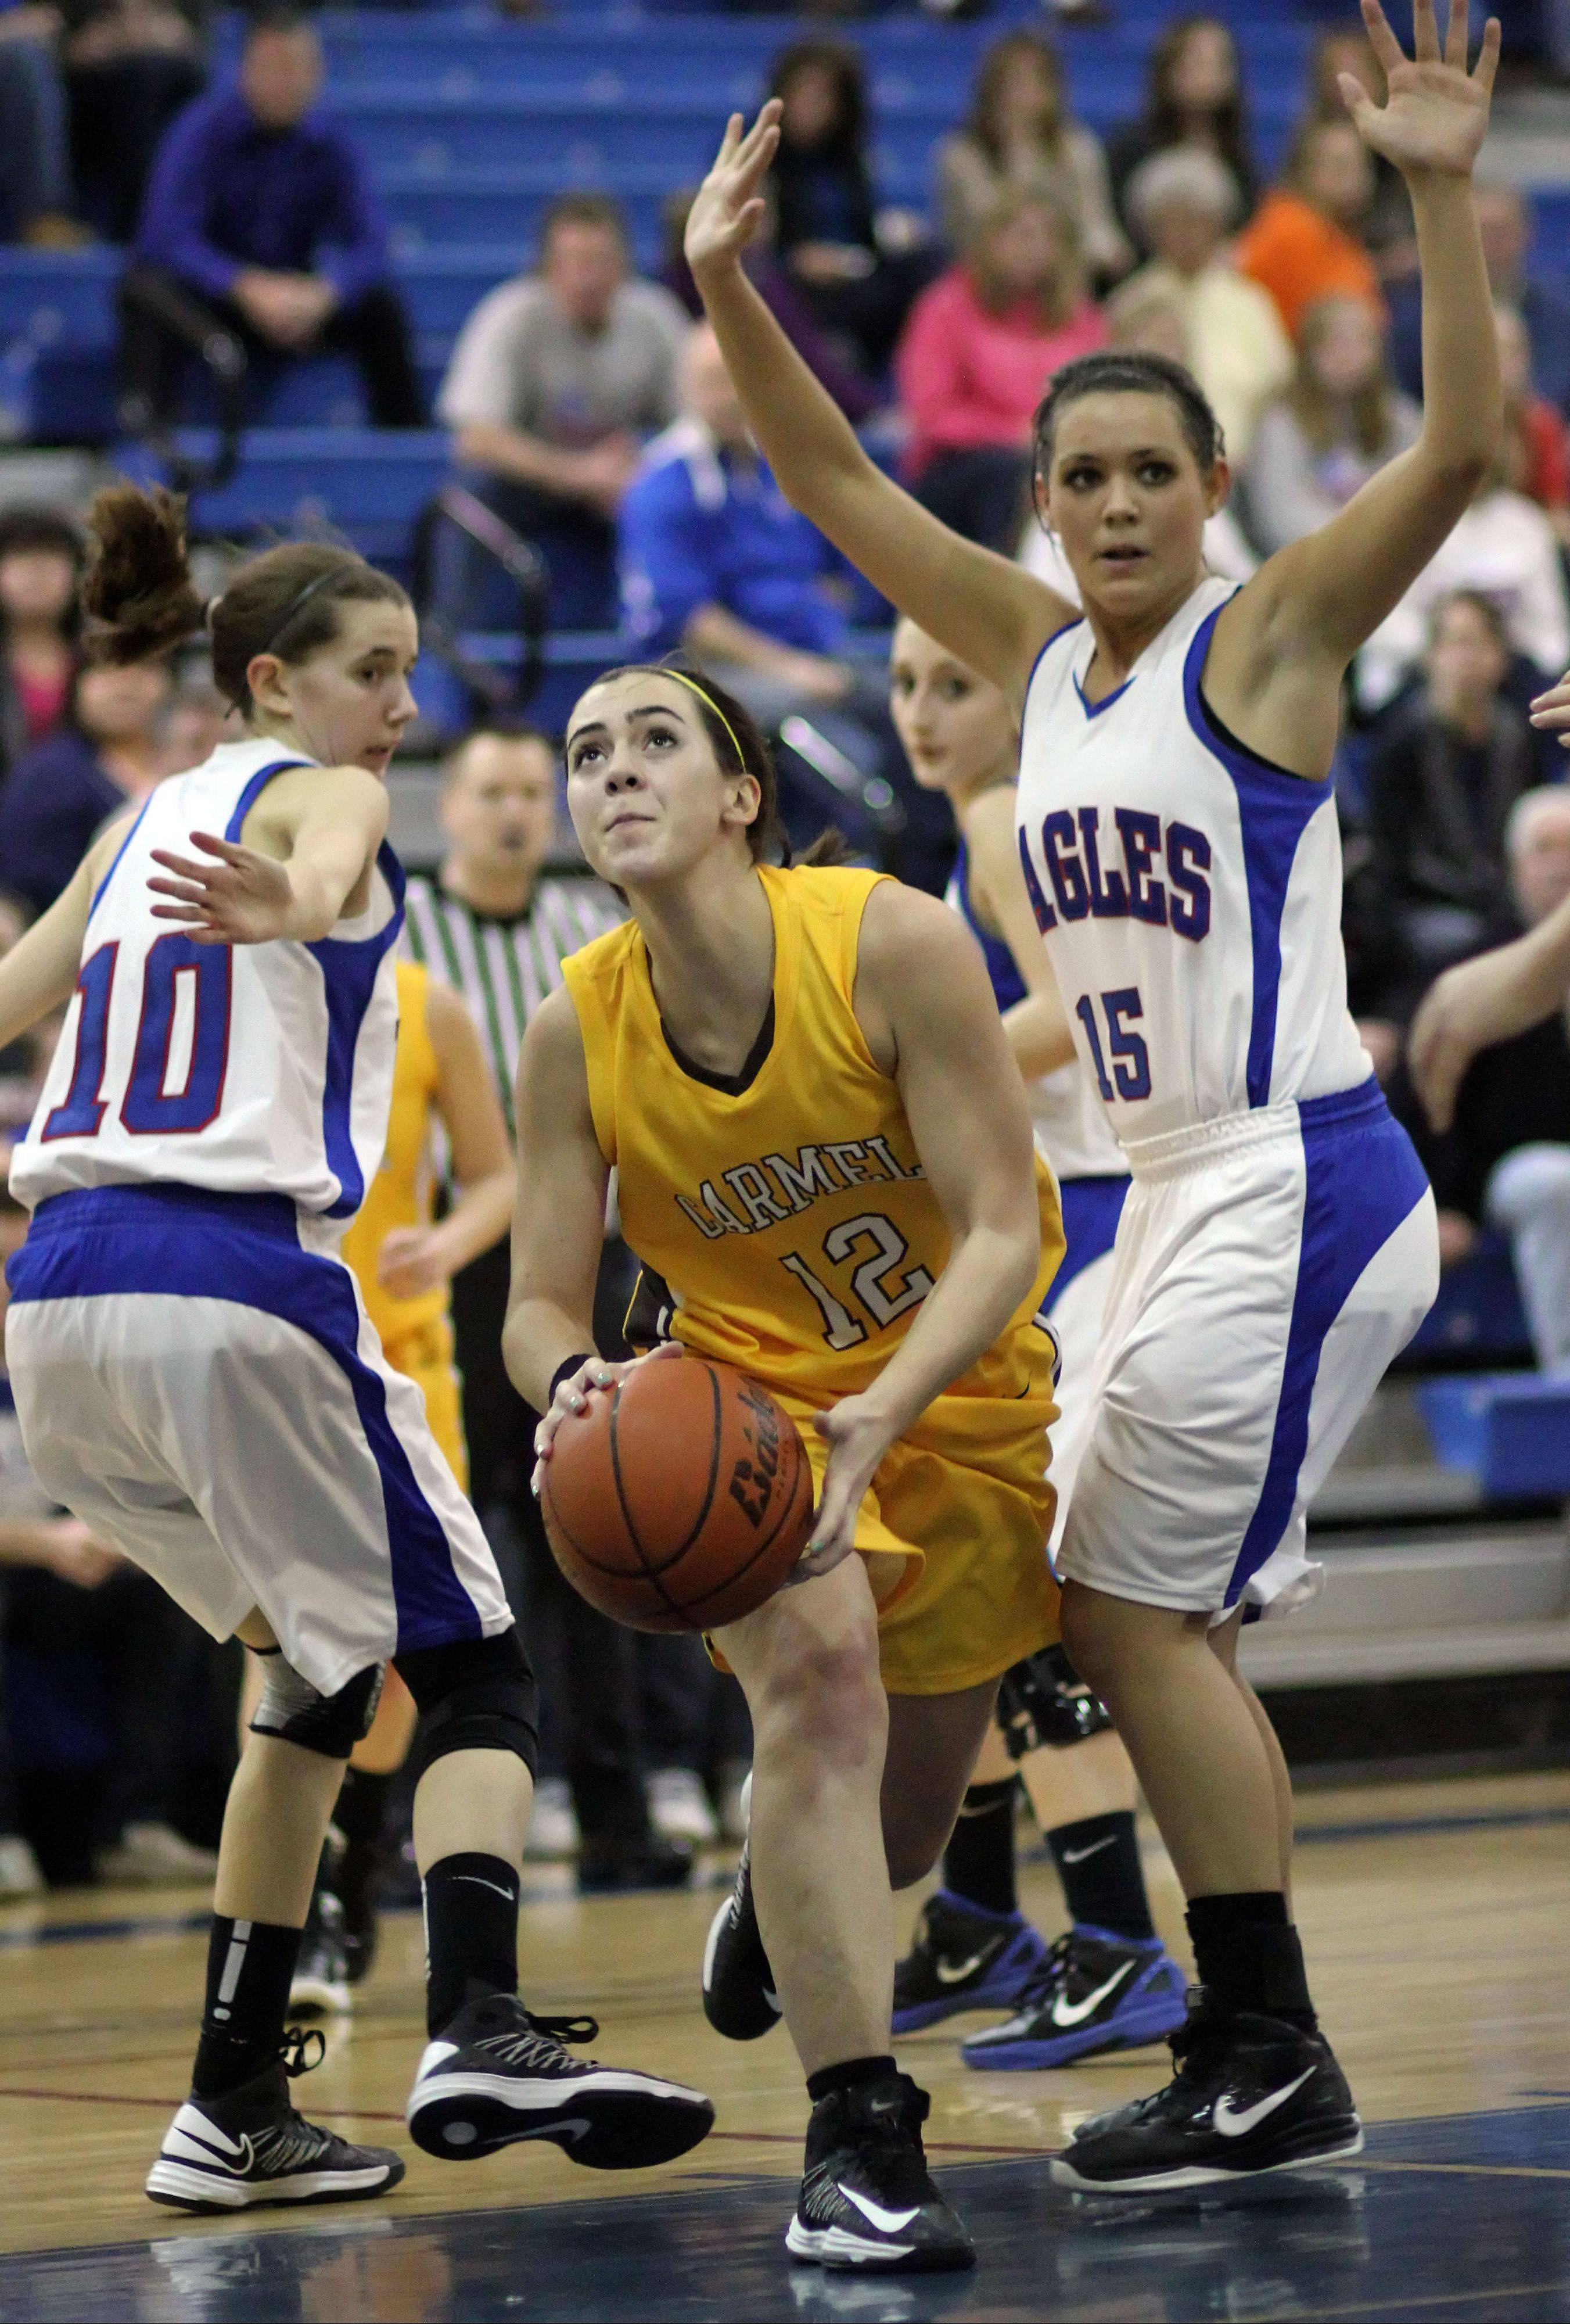 Considerate Carmel earns win over Lakes